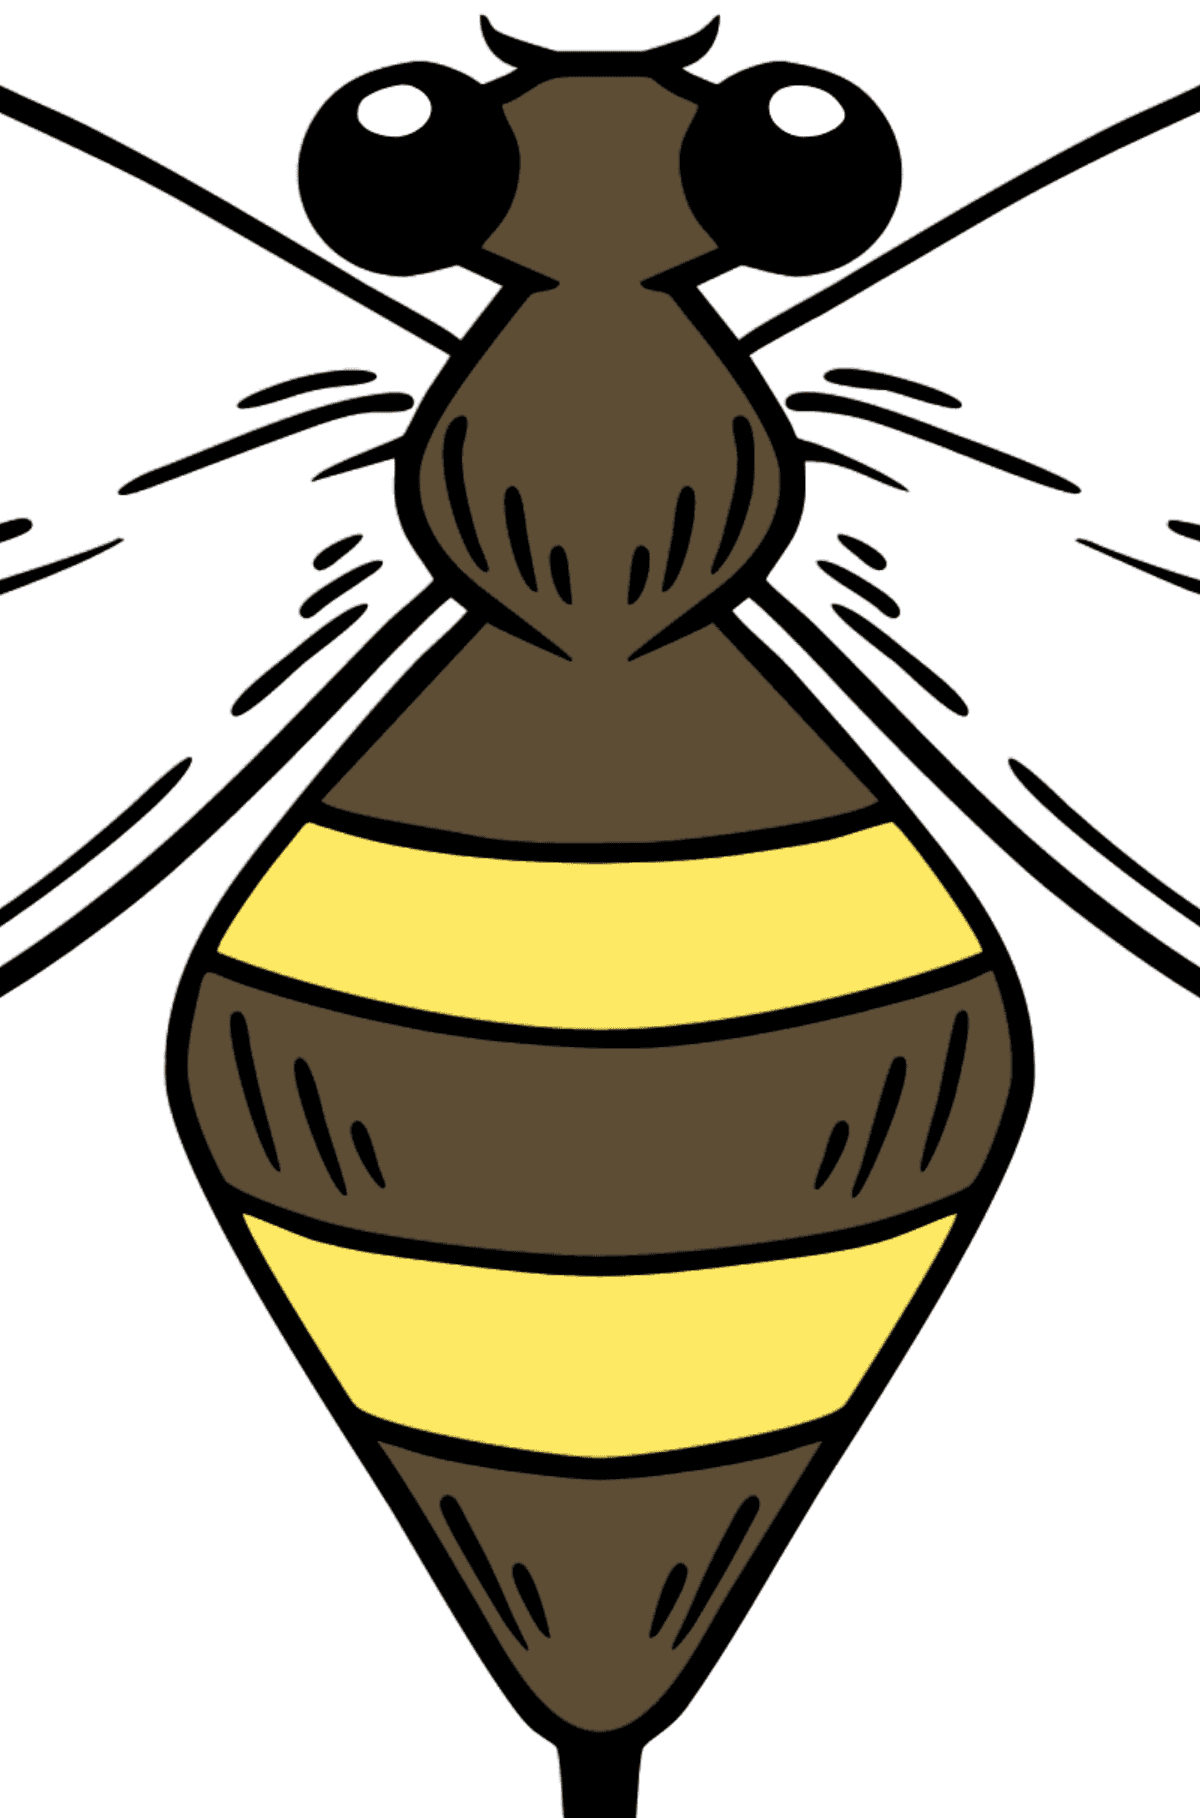 Wasp coloring page - Coloring by Letters for Kids